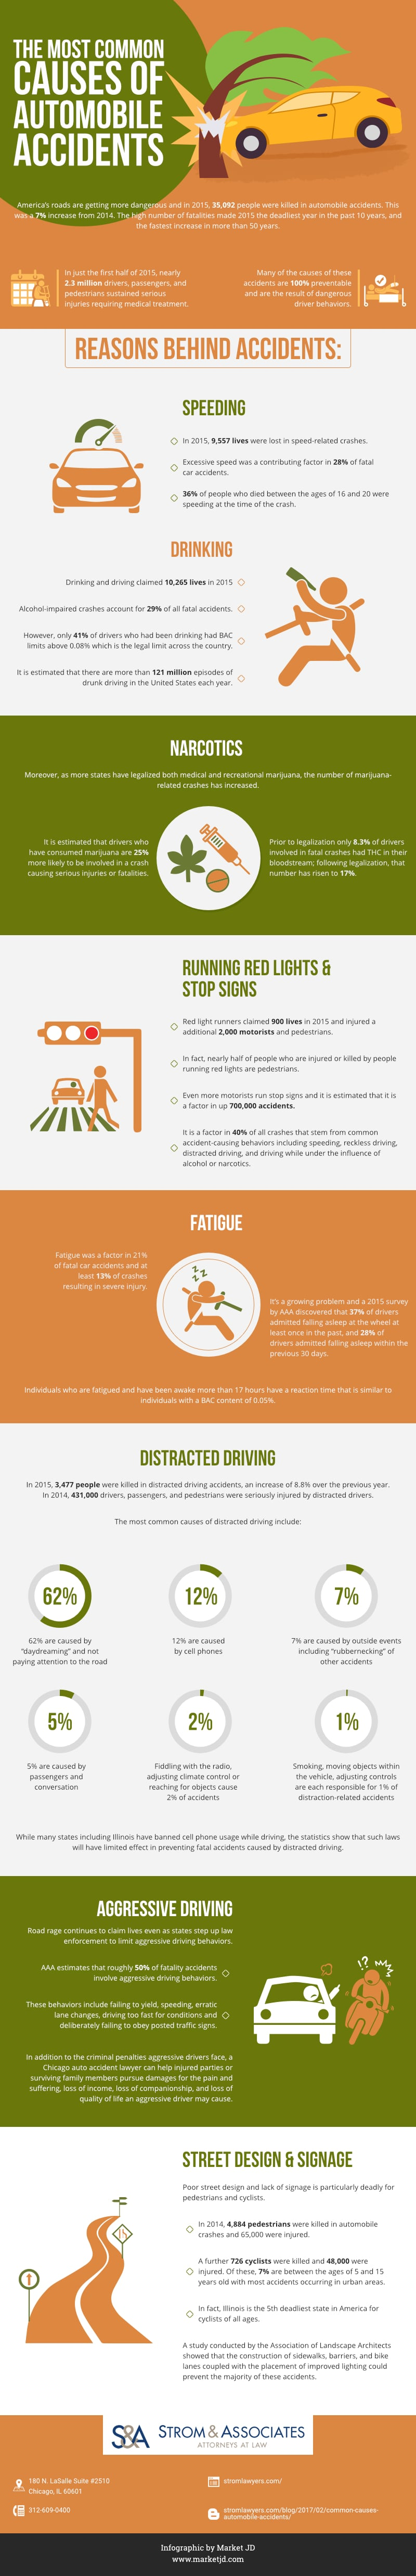 Common causes of automobile accidents infographic